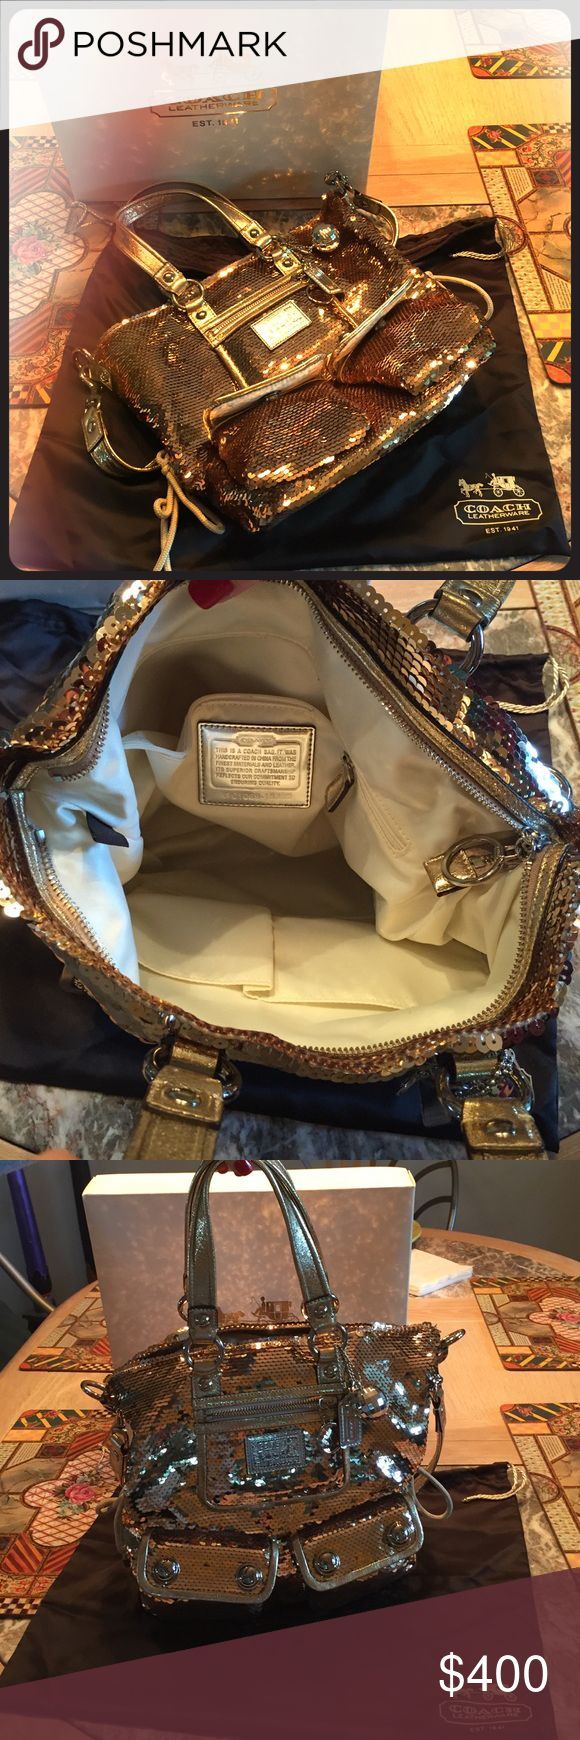 Coach Poppy Spotlight Gold Sequin Purse Coach Sequin Poppy Gold Sequin Purse. NWOT- Never Used. It has been in the original purse bag and box since I've bought it.  It is an amazing bag to dress up jeans and a solid top. Coach Bags Satchels